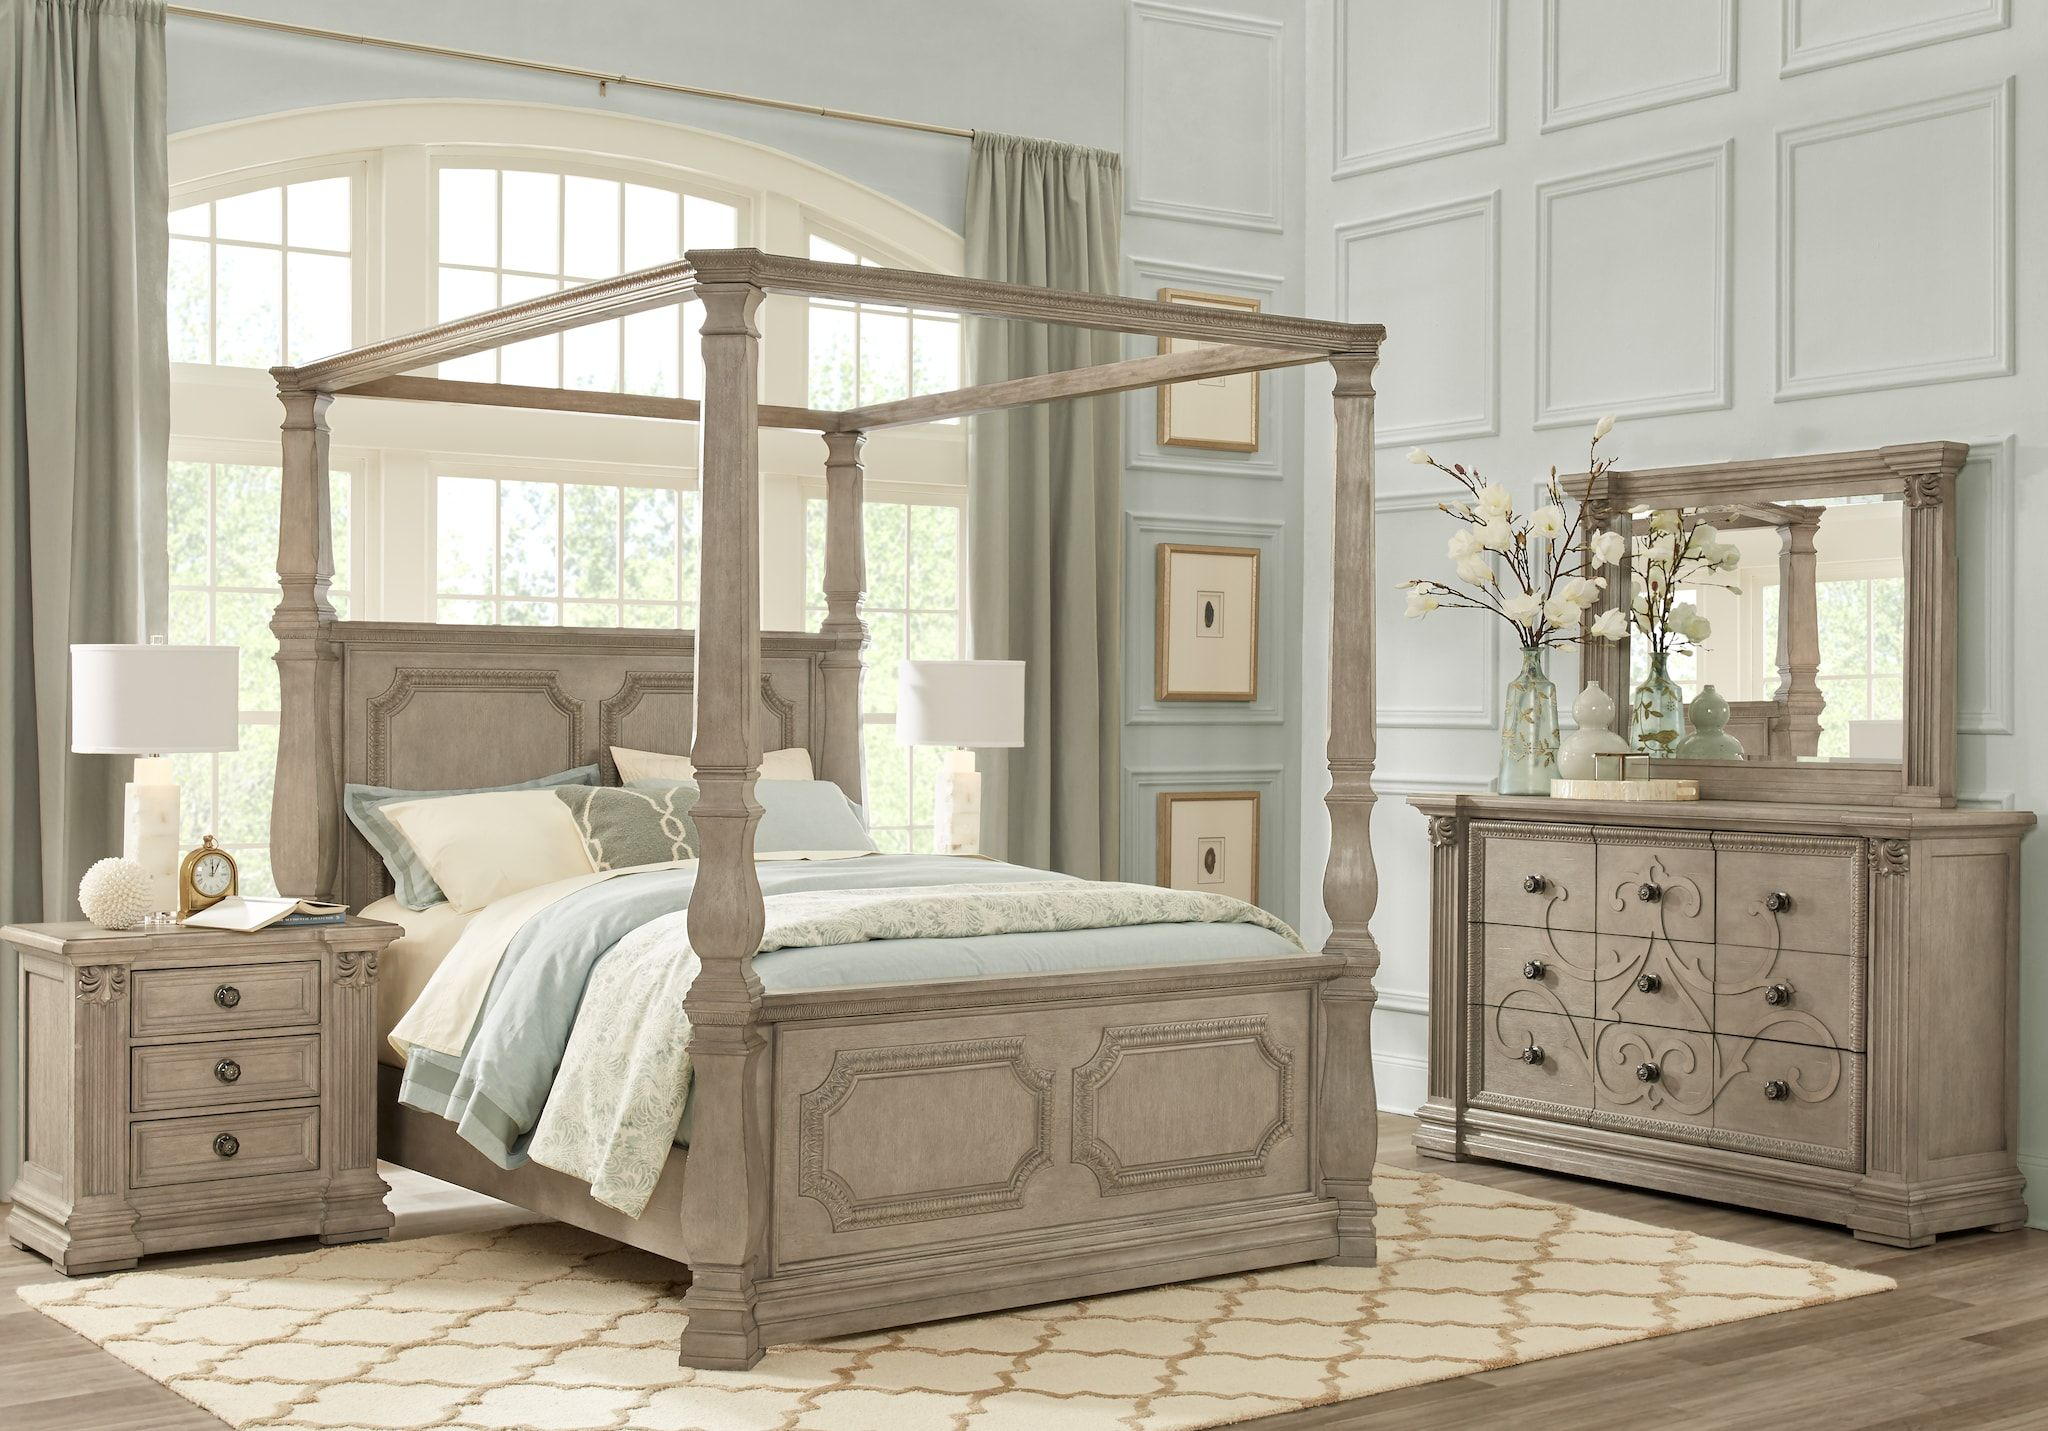 Best Love This Affordable Queen Bedroom Sets For Sale 5 6 400 x 300